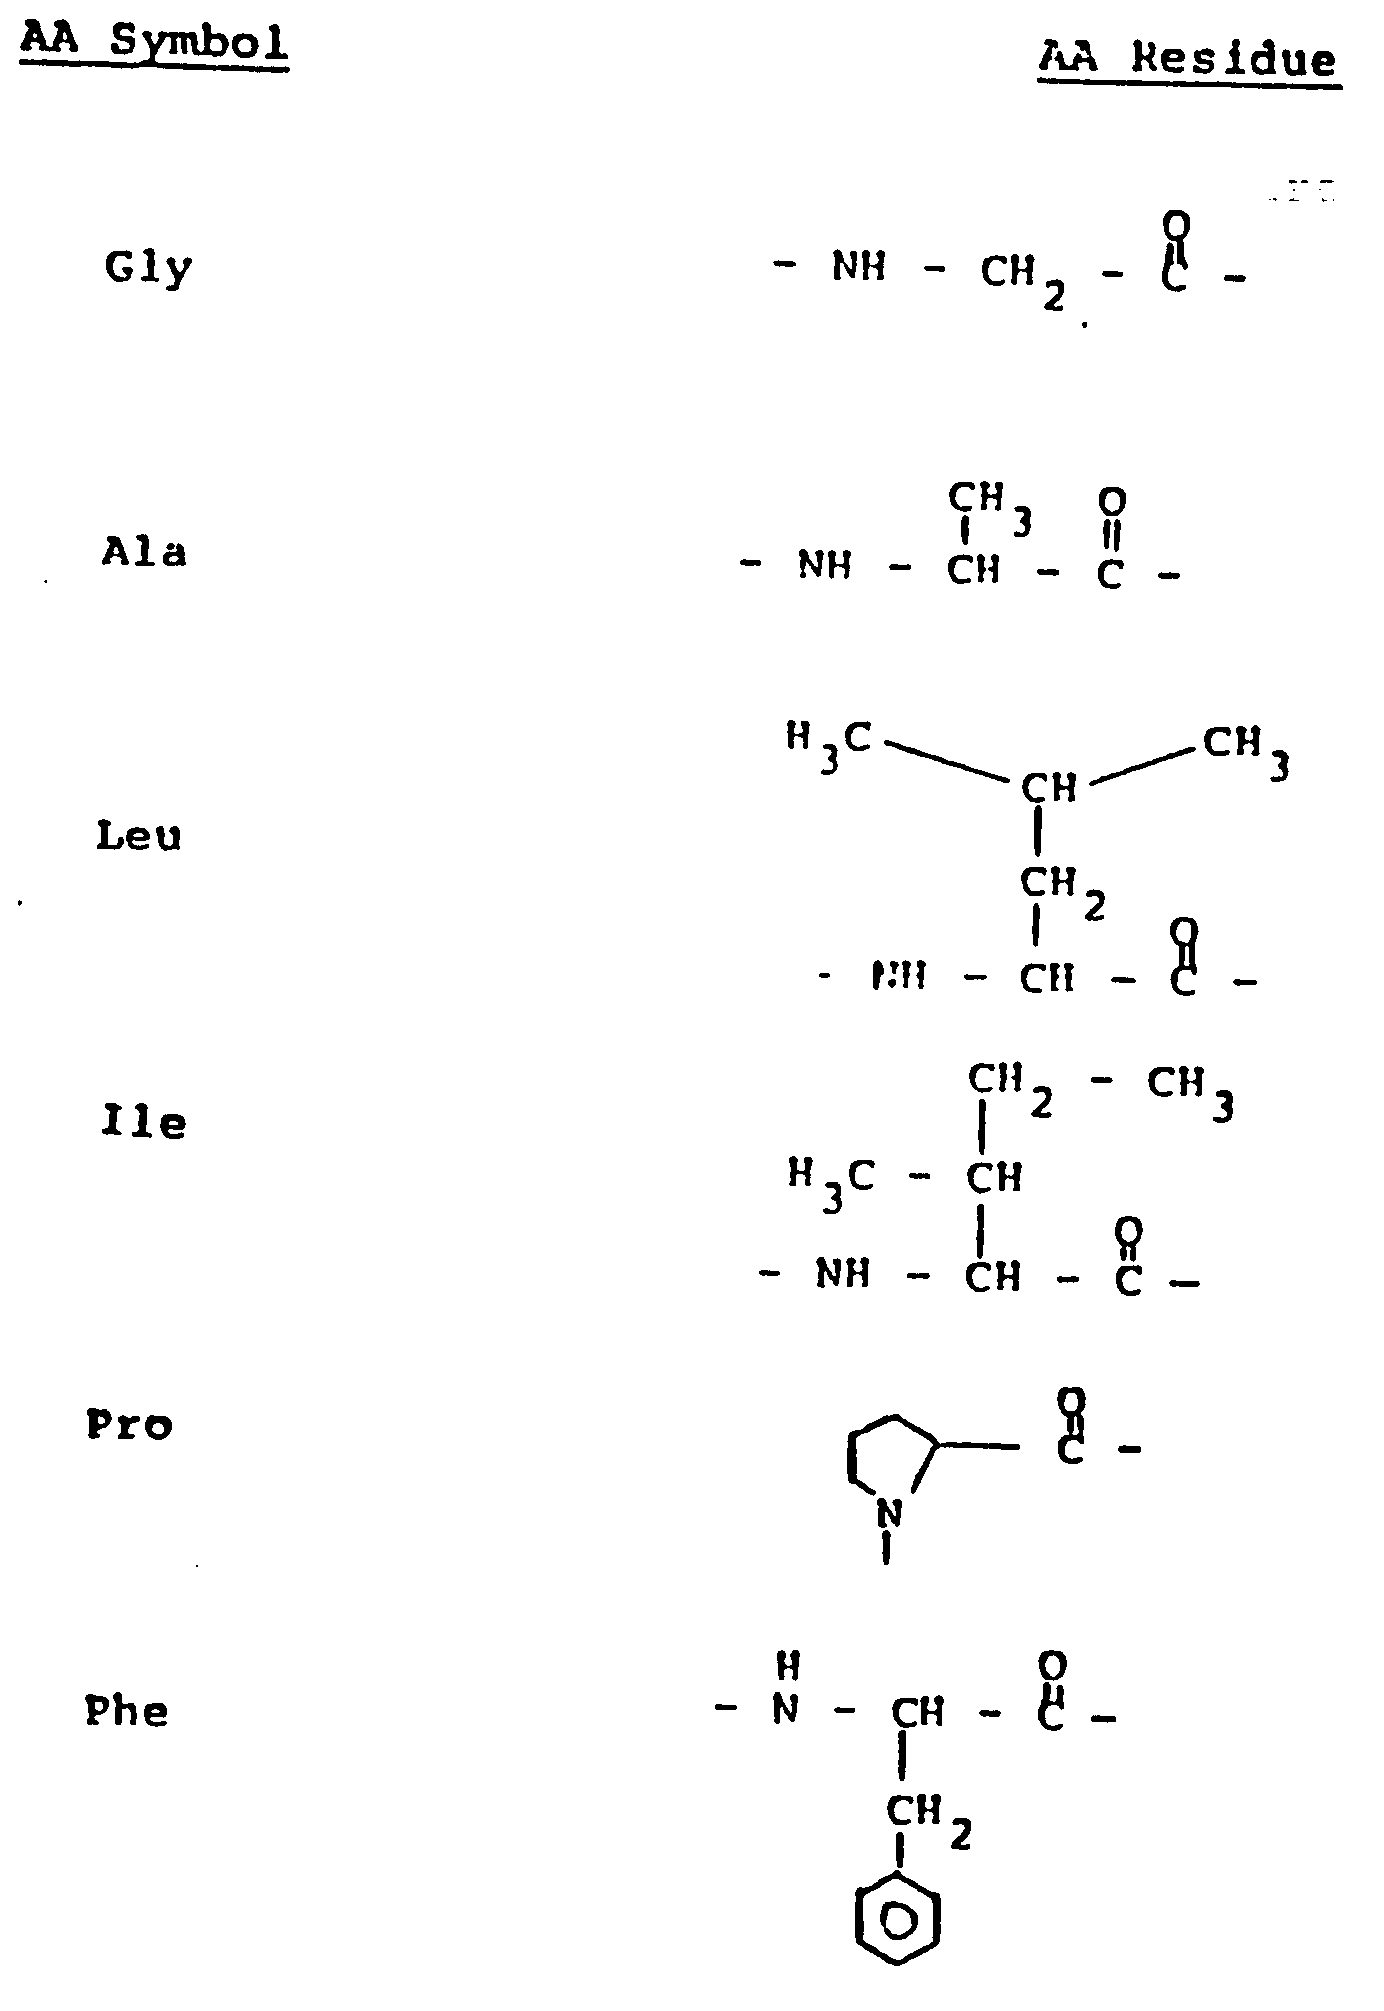 how to remember amino acid groups